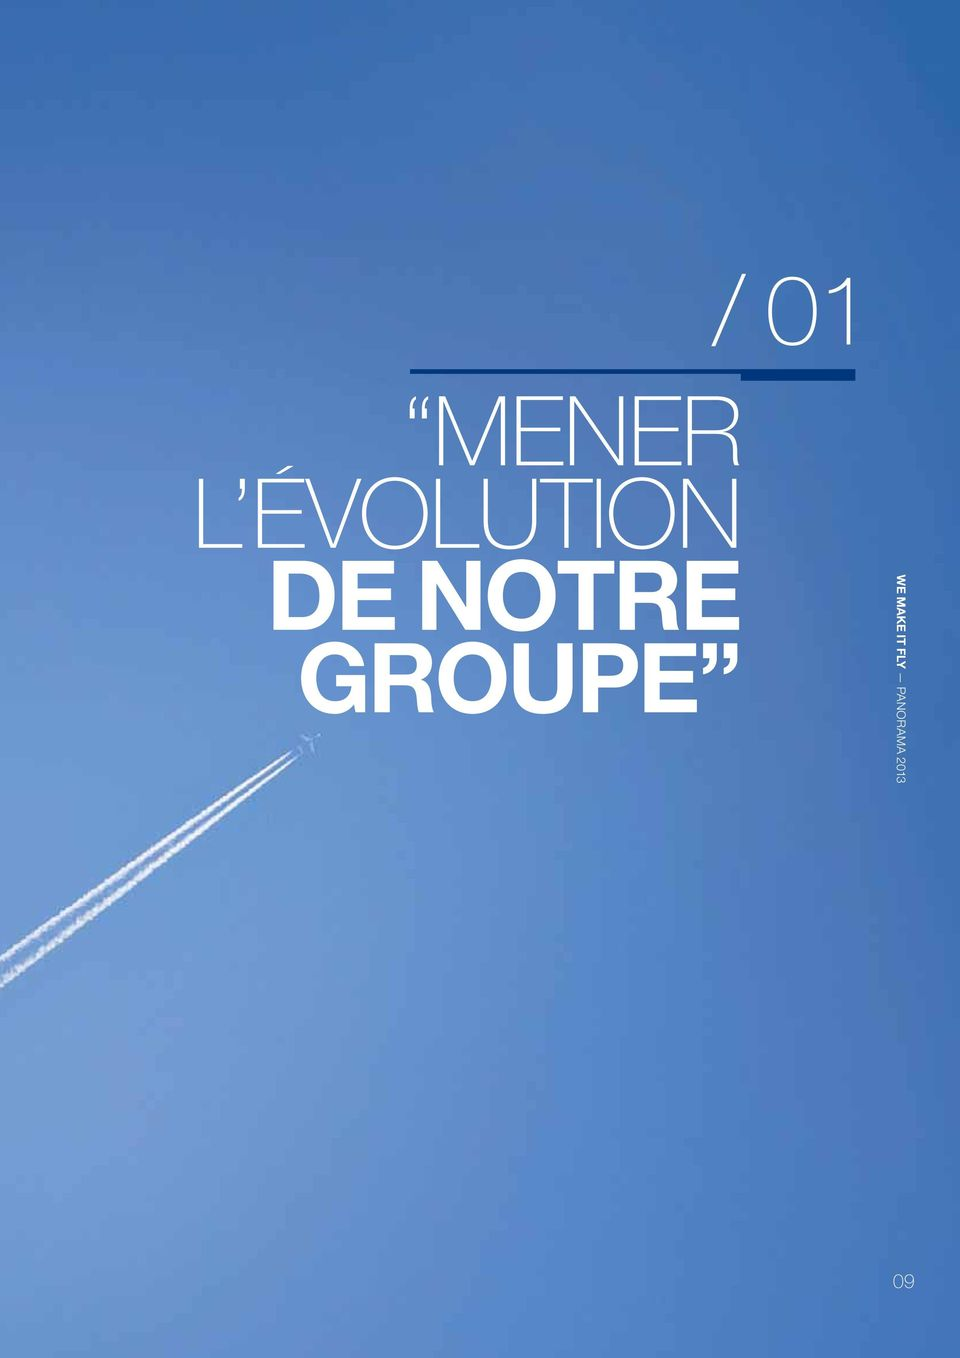 NOTRE GROUPE WE